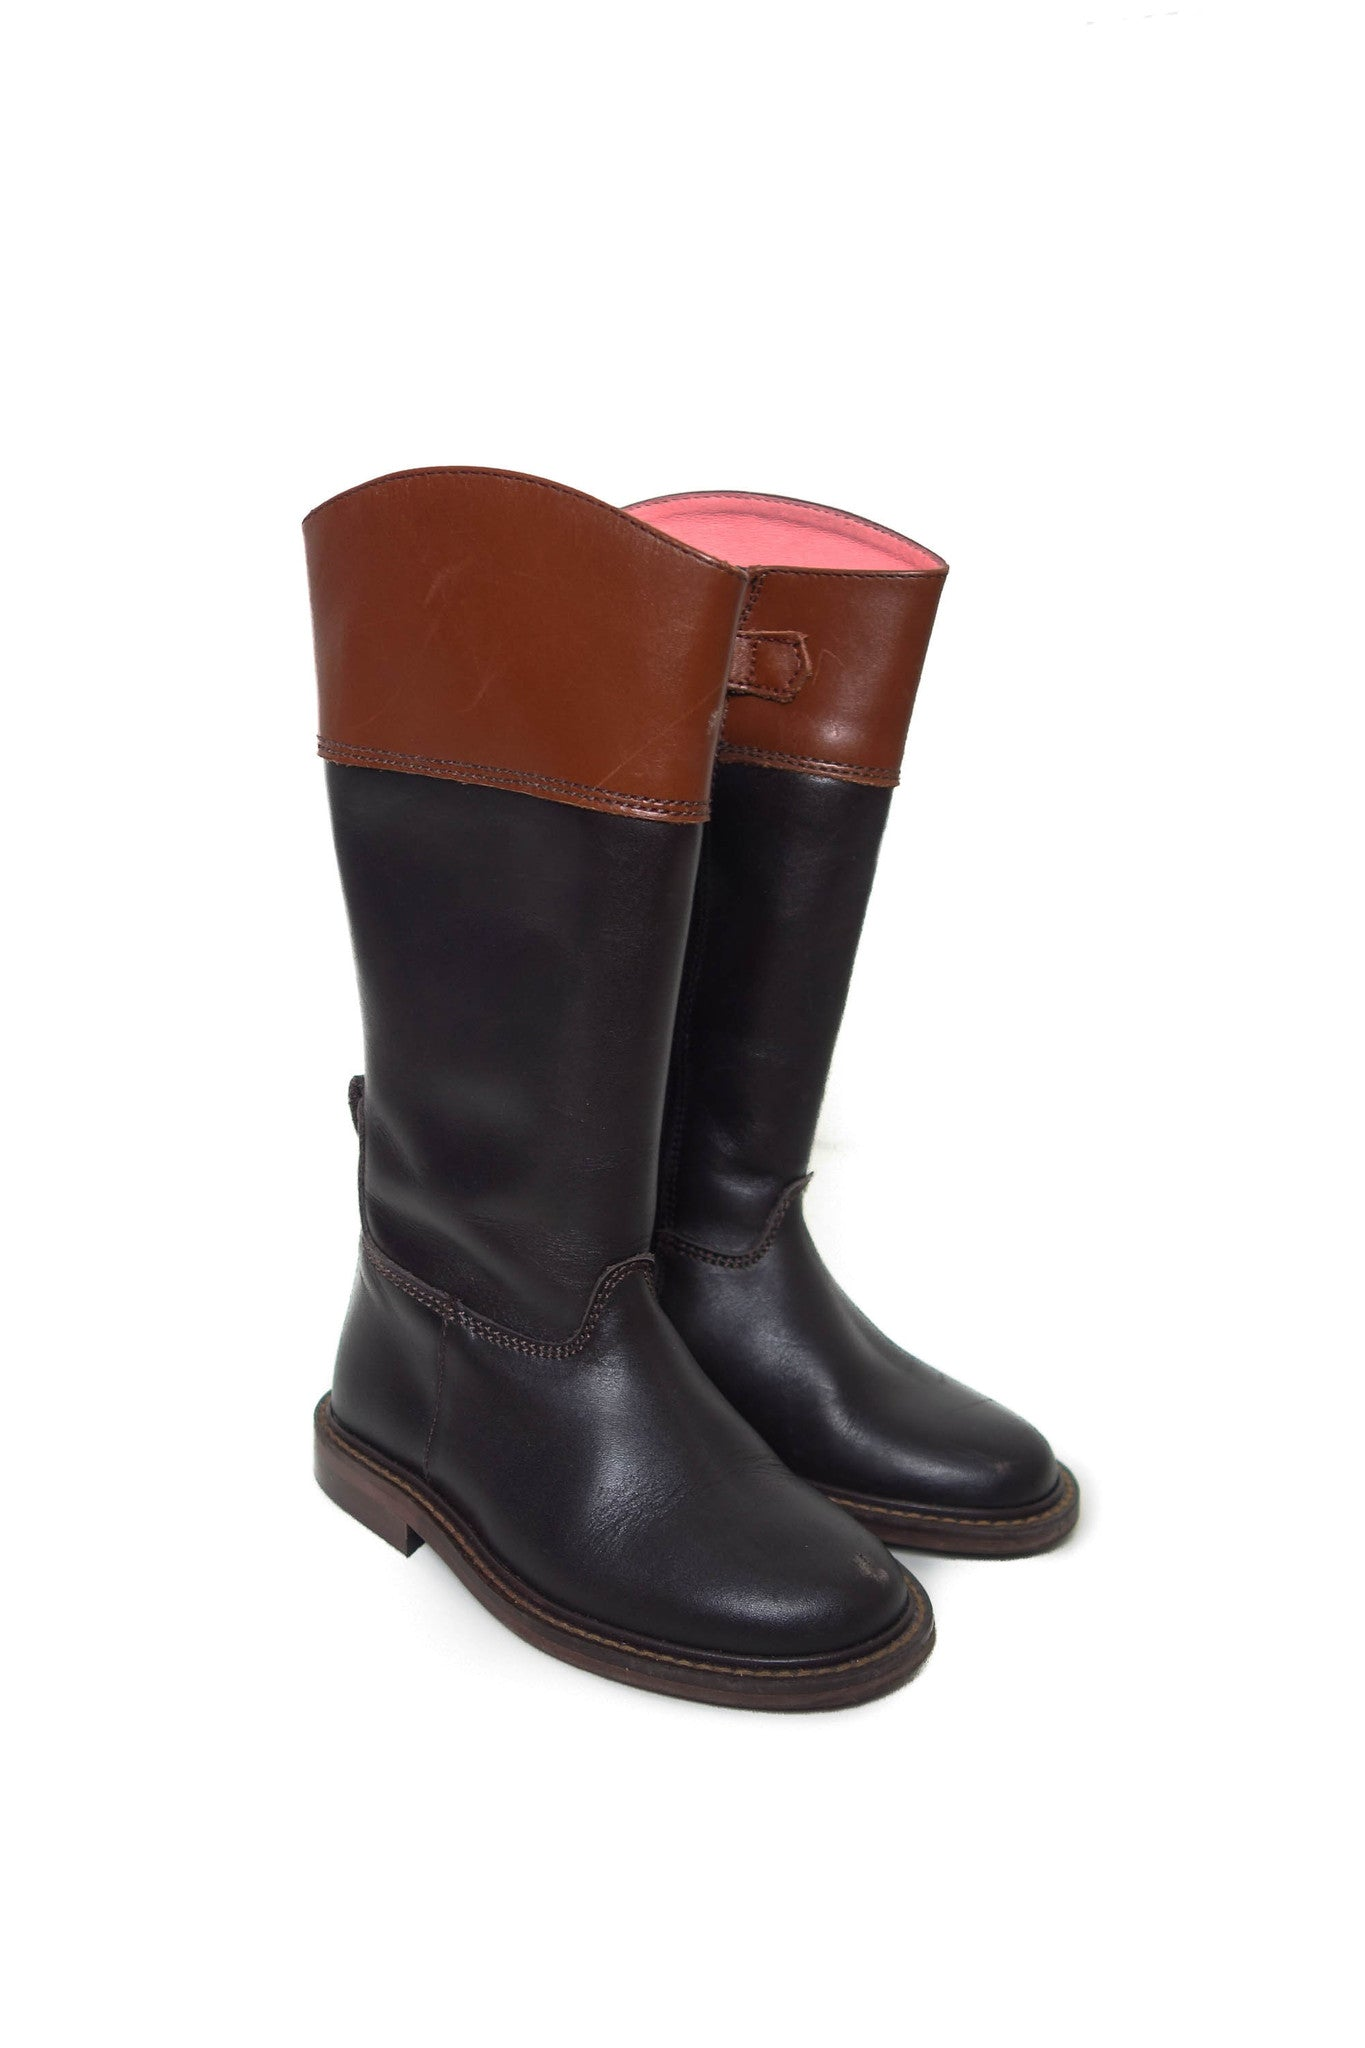 10002805 Jacadi Kids~Boots 3T (EU 25) at Retykle